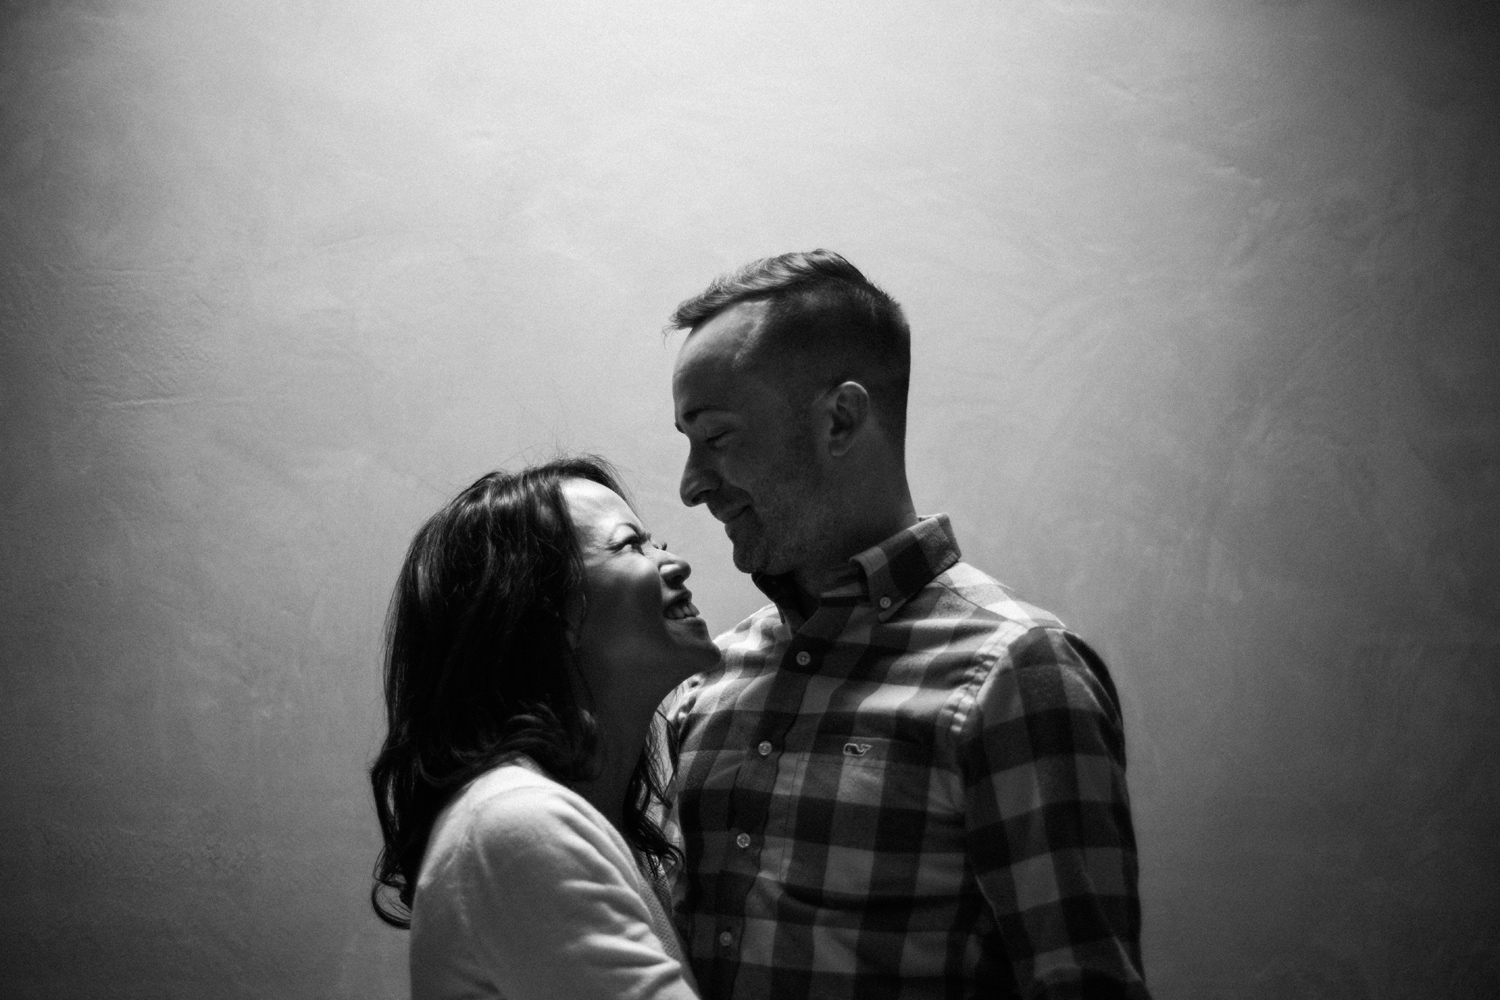 Siousca_Photography_philadelphia_engagement_film_photographer_lokal_hotel_old_city_philly_7.jpg